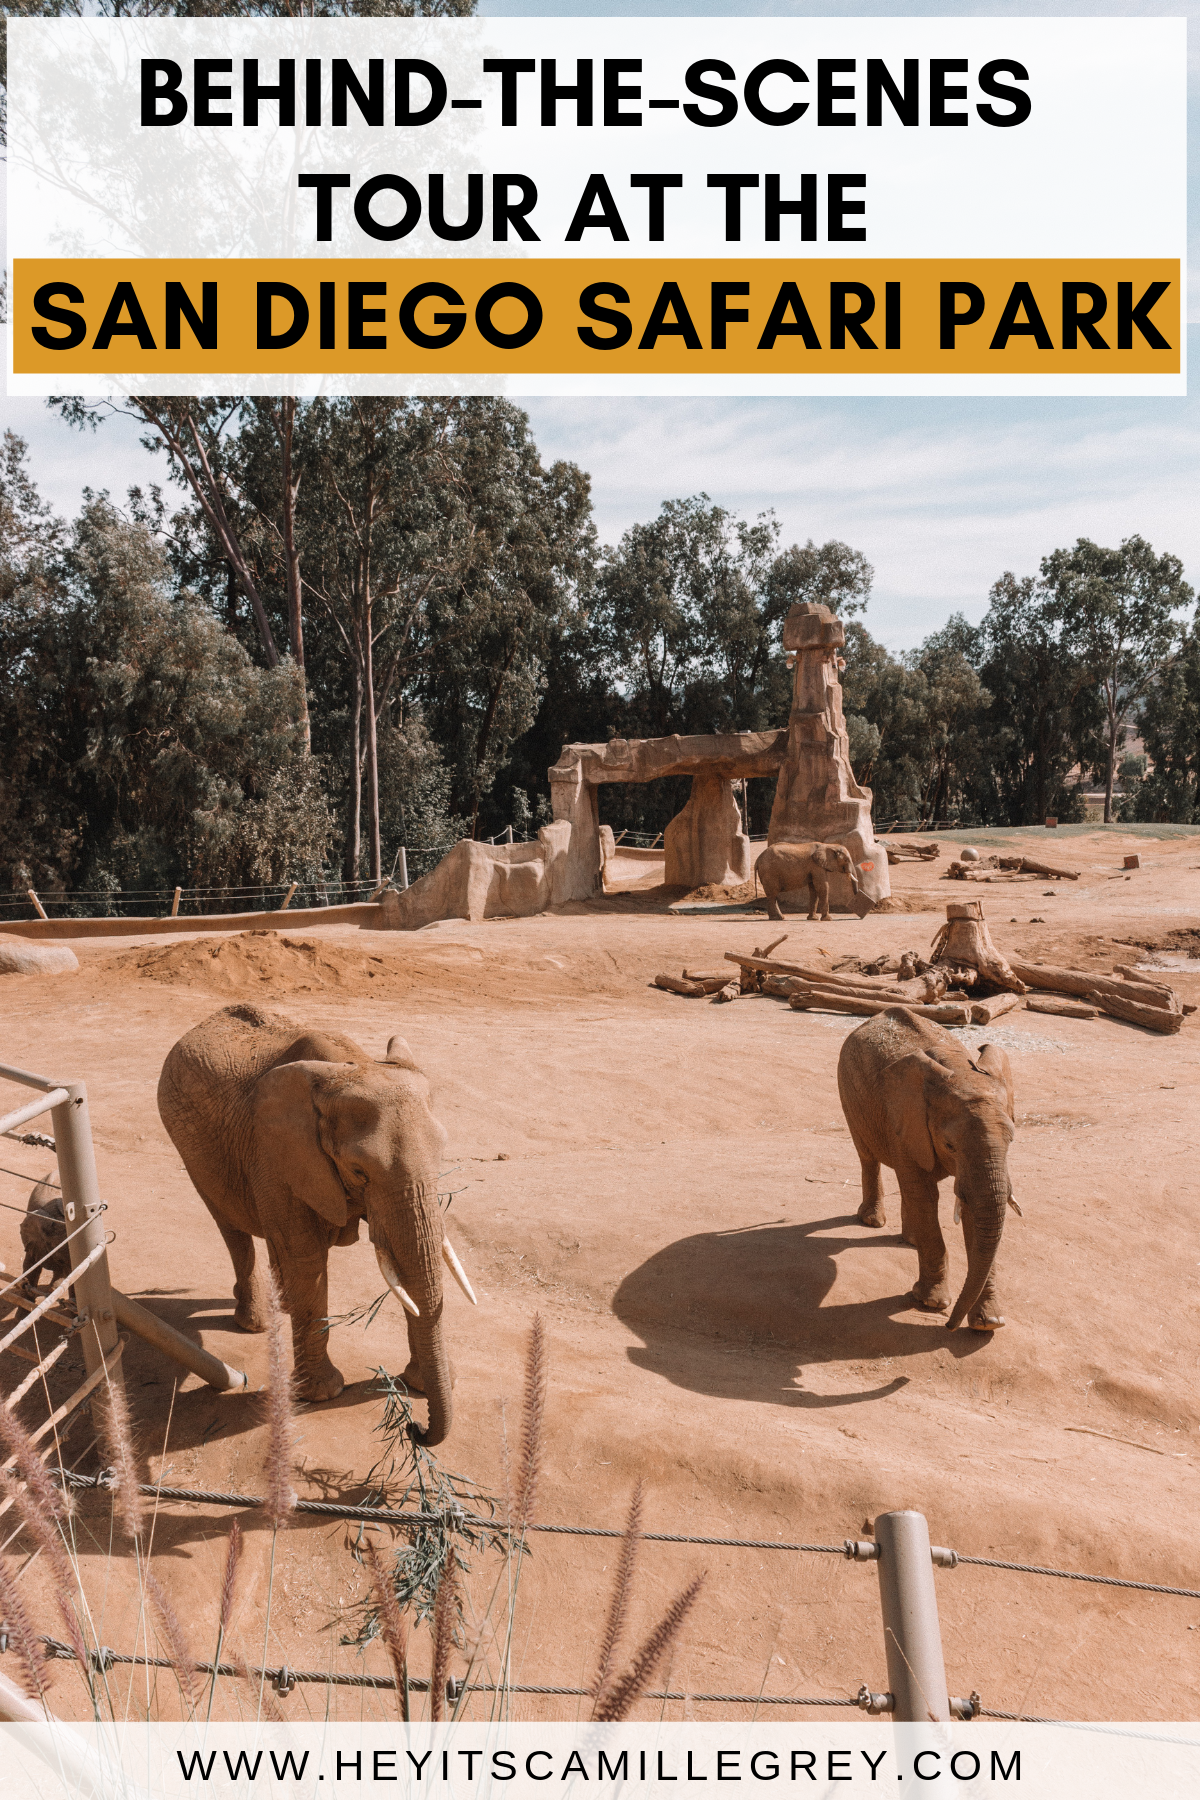 Behind-the-Scenes Elephant Tour at San Diego Safari Park | Hey Its Camille Grey #sandiego #safariapark #california #zoo #elephants